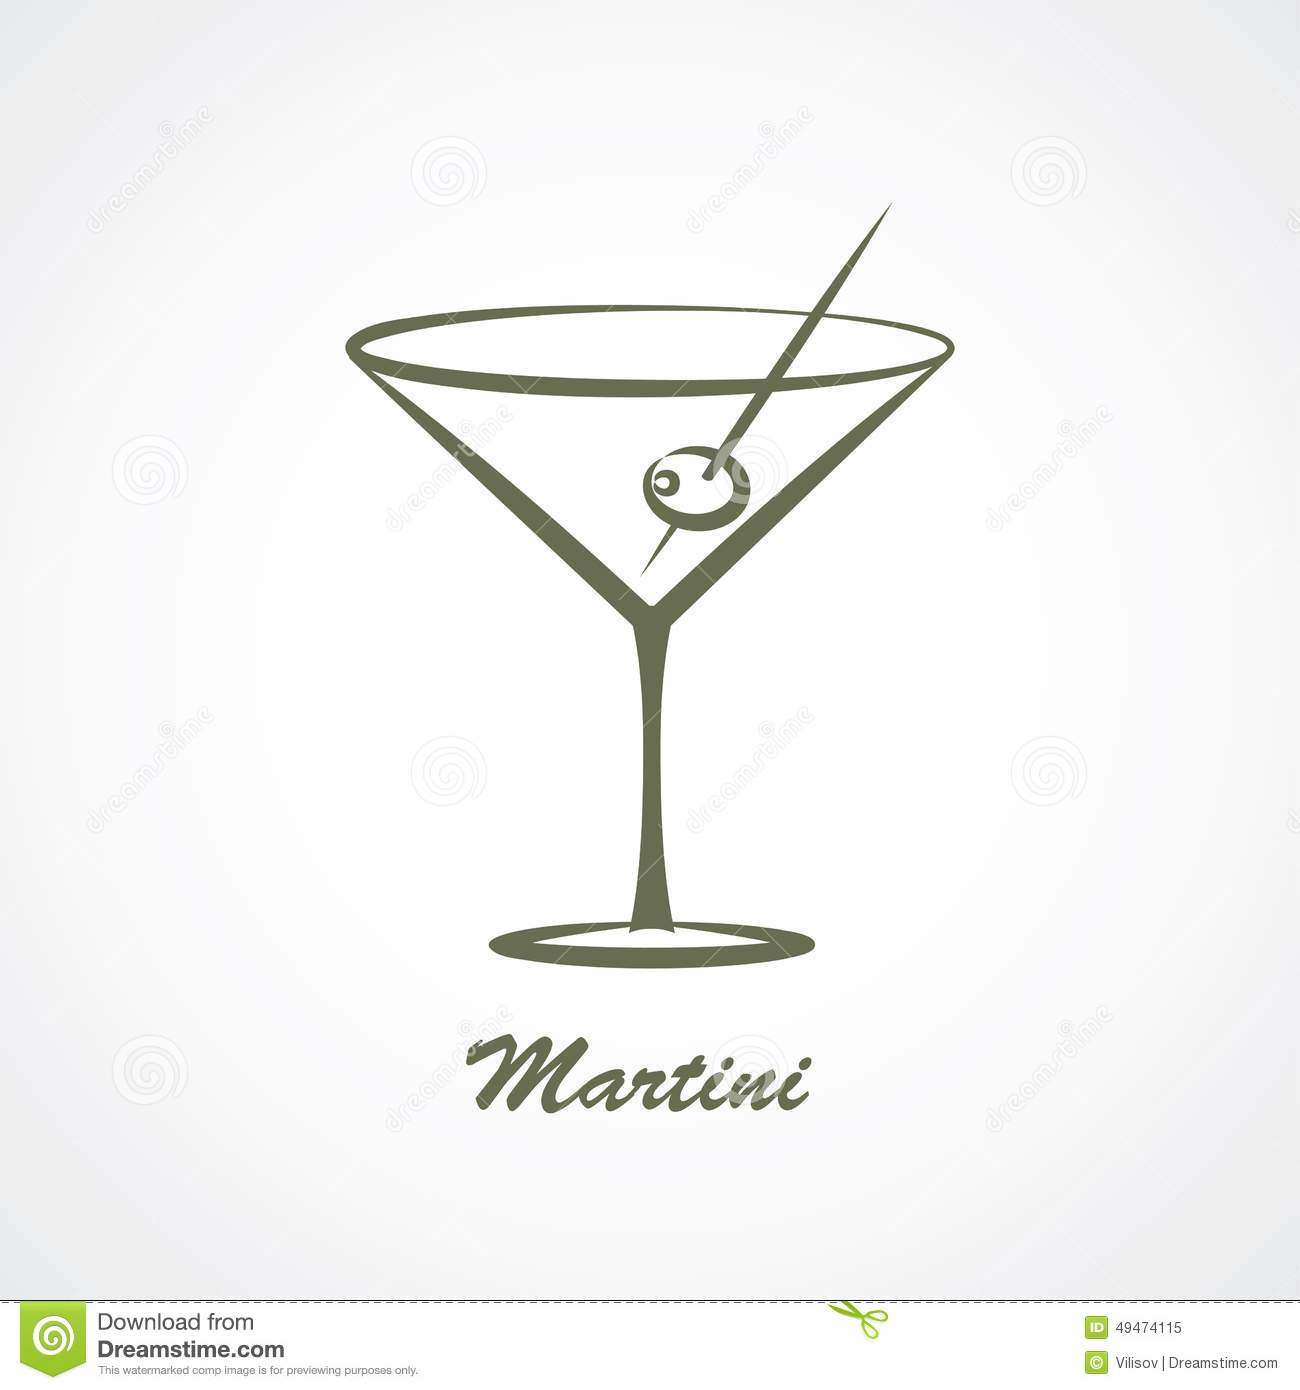 Martini Glass Vector Pictures to Pin on Pinterest - PinsDaddy